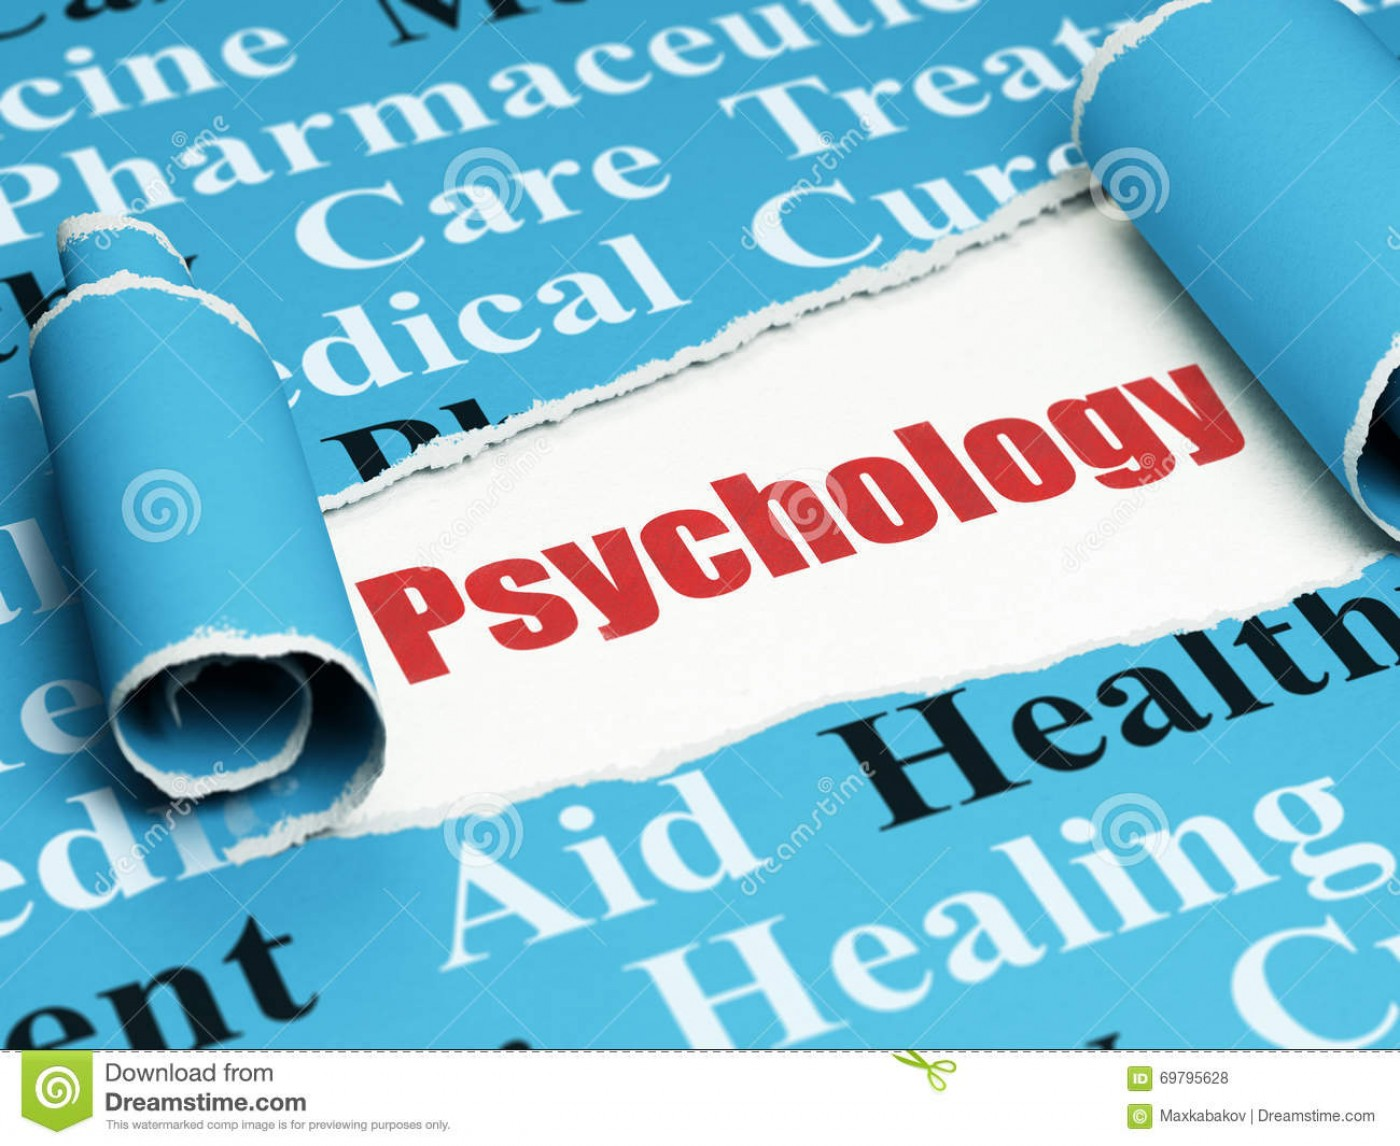 010 Research Paper Psychology On Dreams Health Concept Red Text Under Piece Torn Curled Blue Tag Cloud Rendering Singular Topics 1400